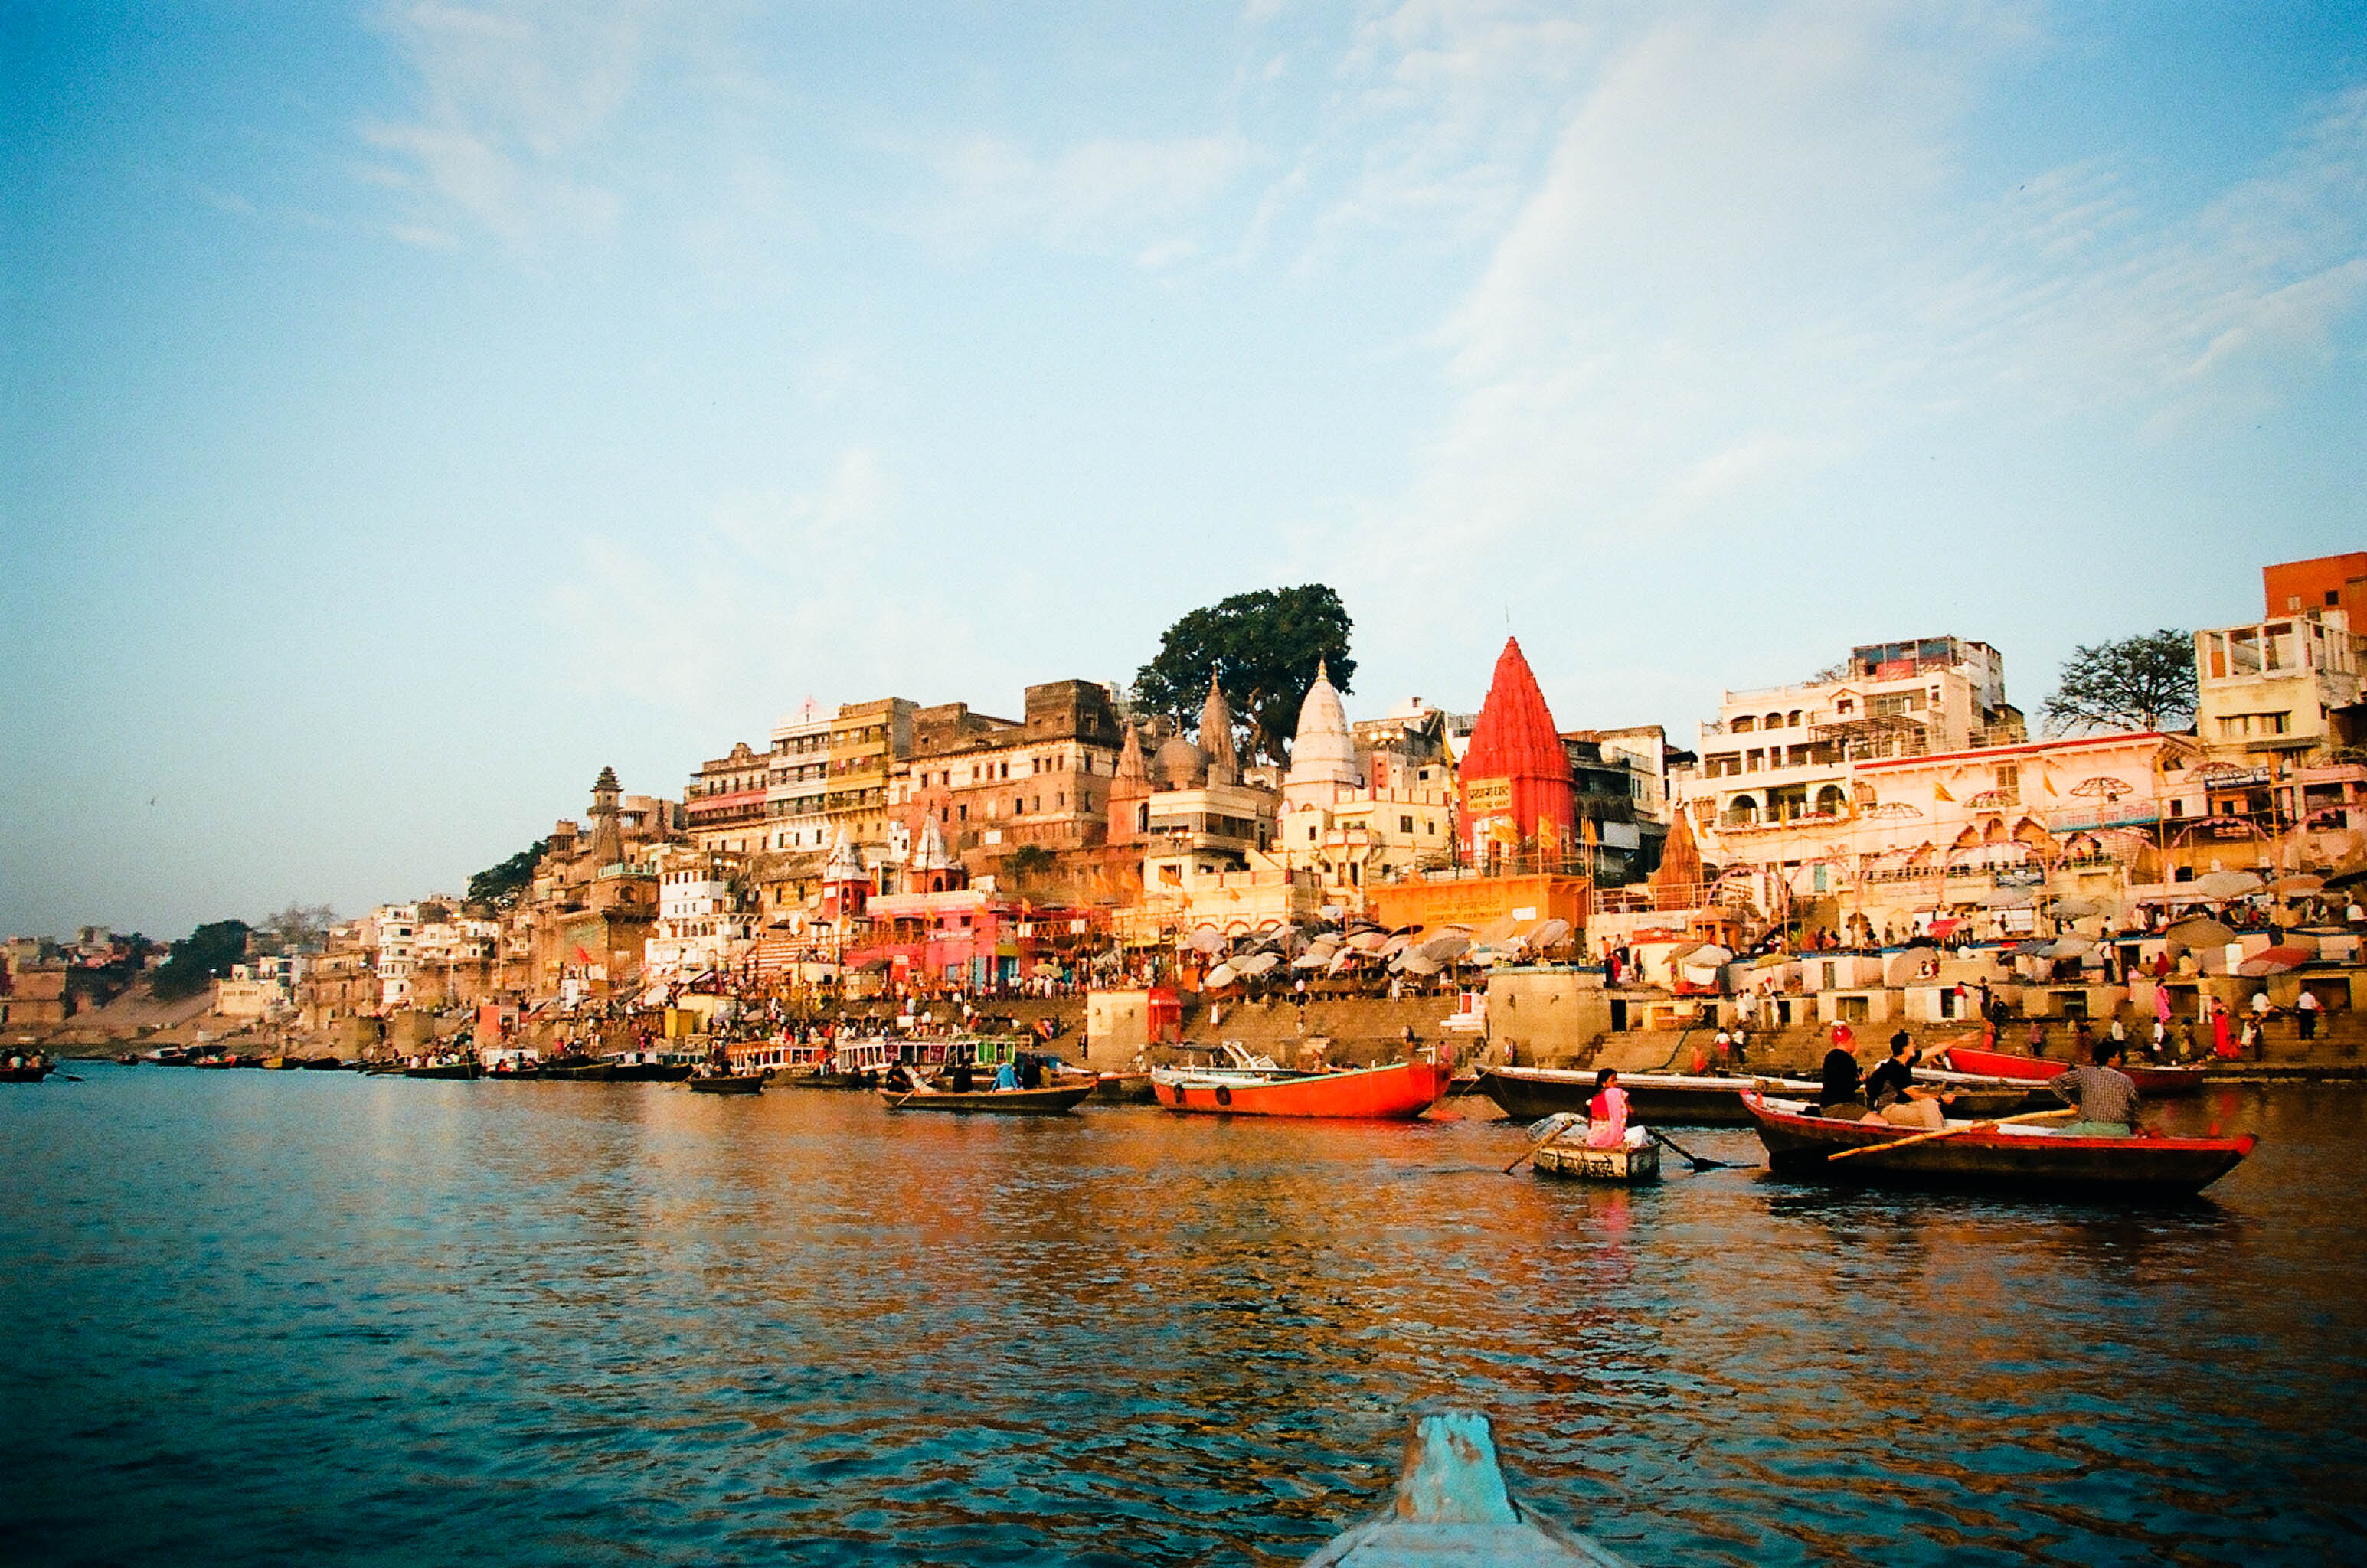 National Mission for Clean Ganga approves 10 projects